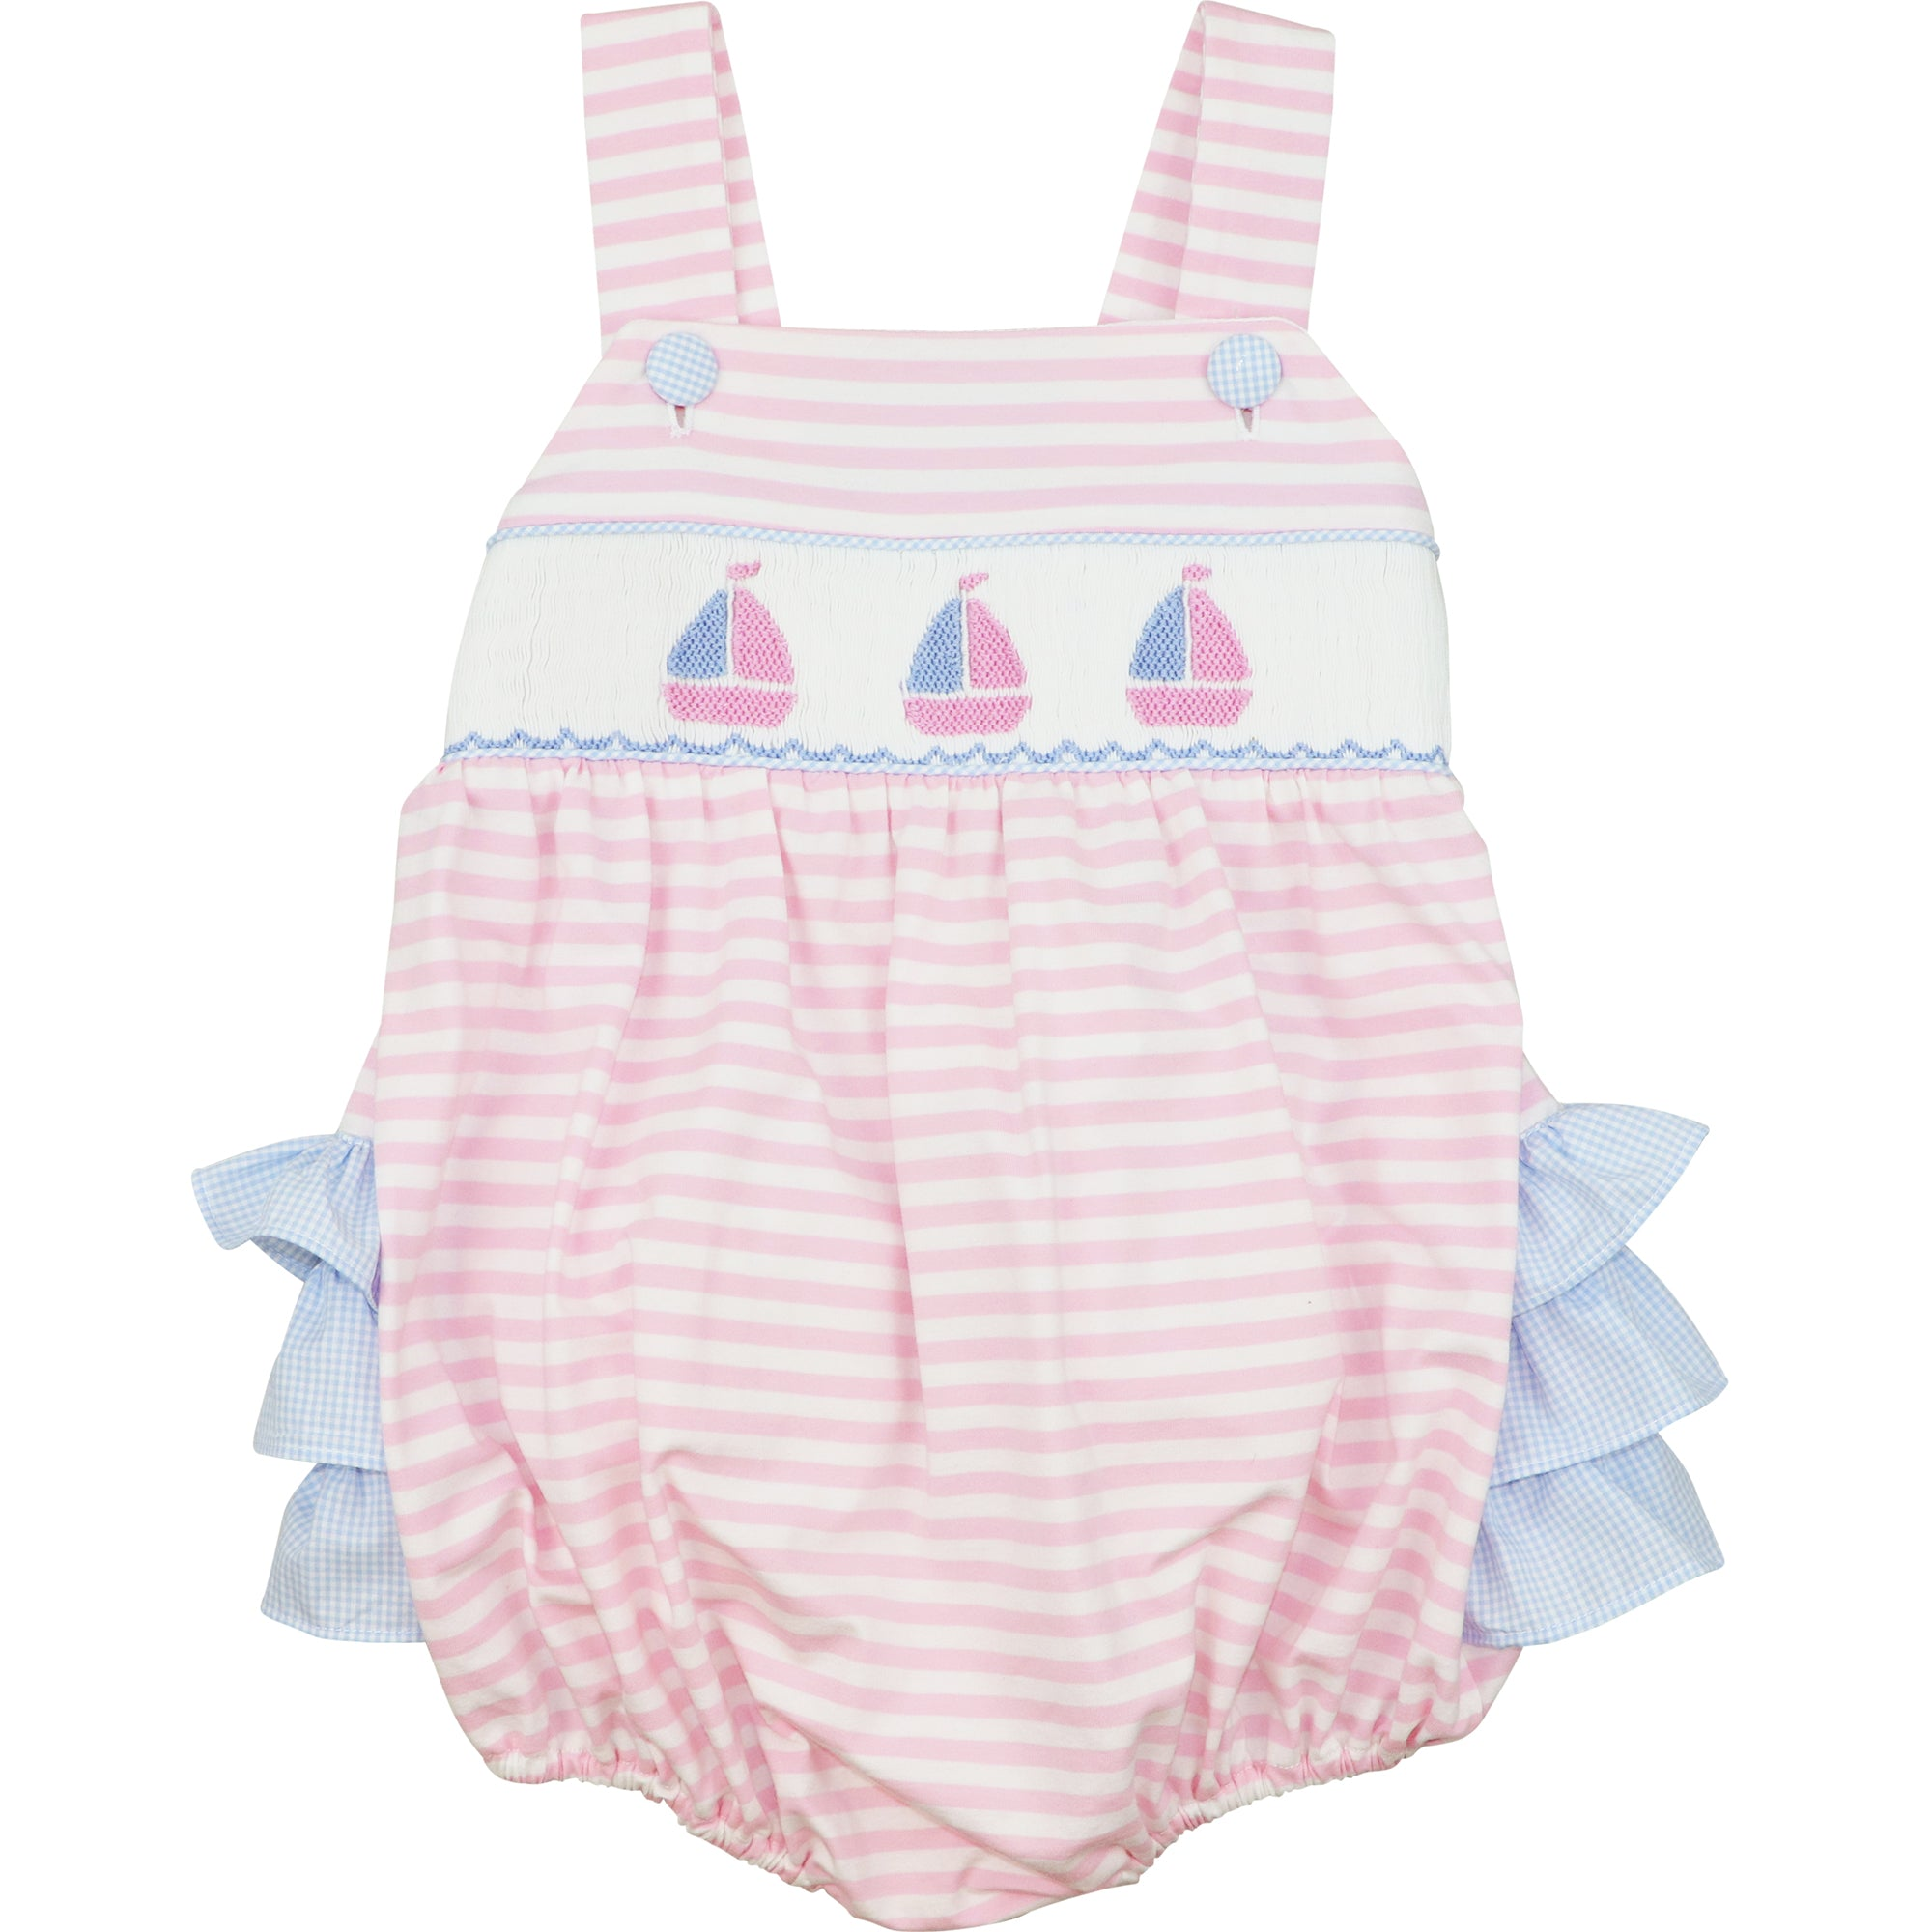 Pink Stripe Knit Smocked Sailboat Bubble